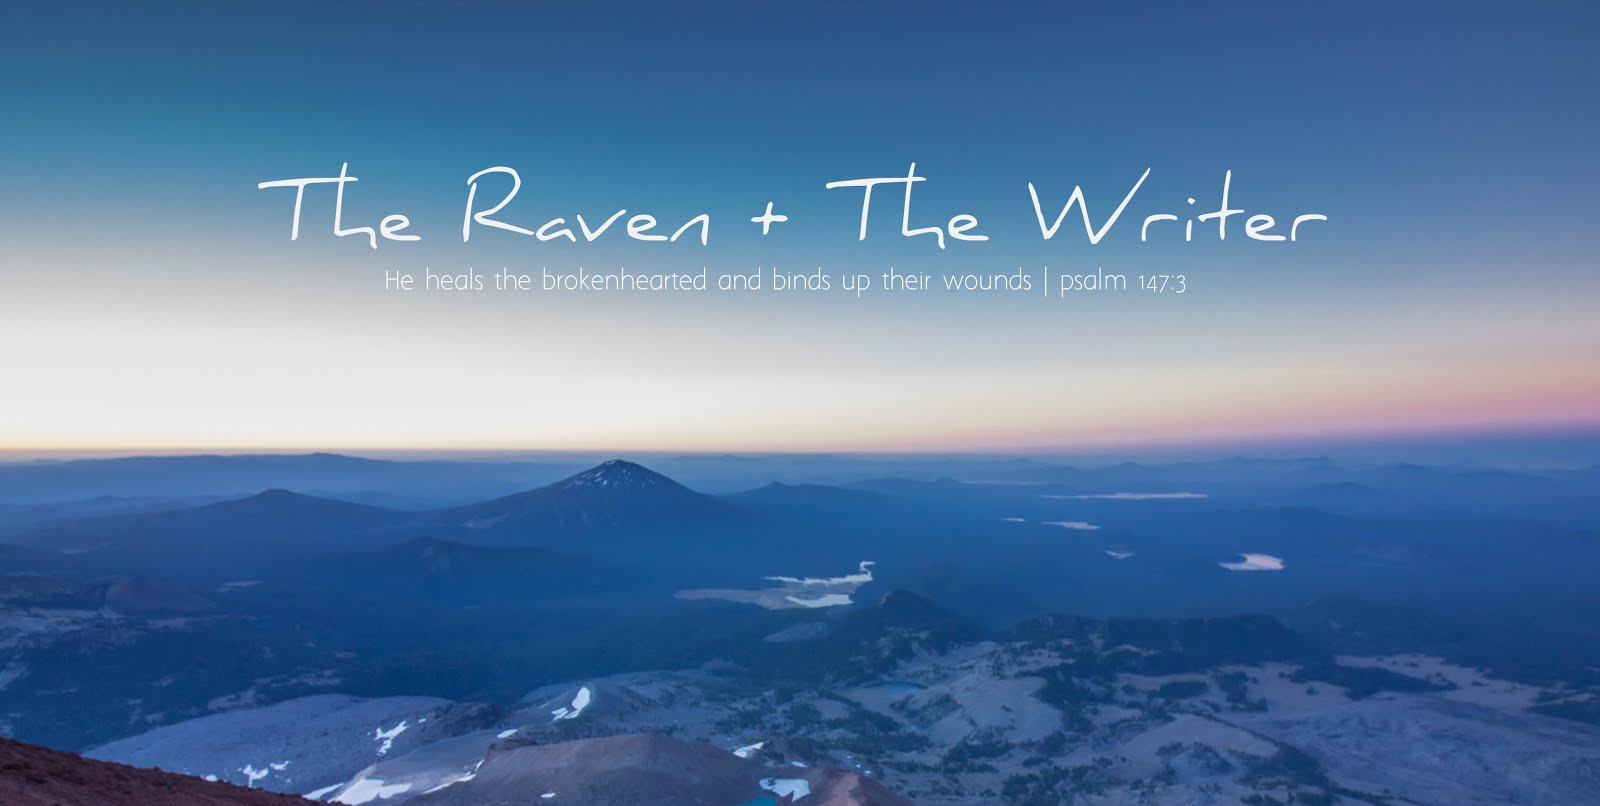 The Raven + The Writer